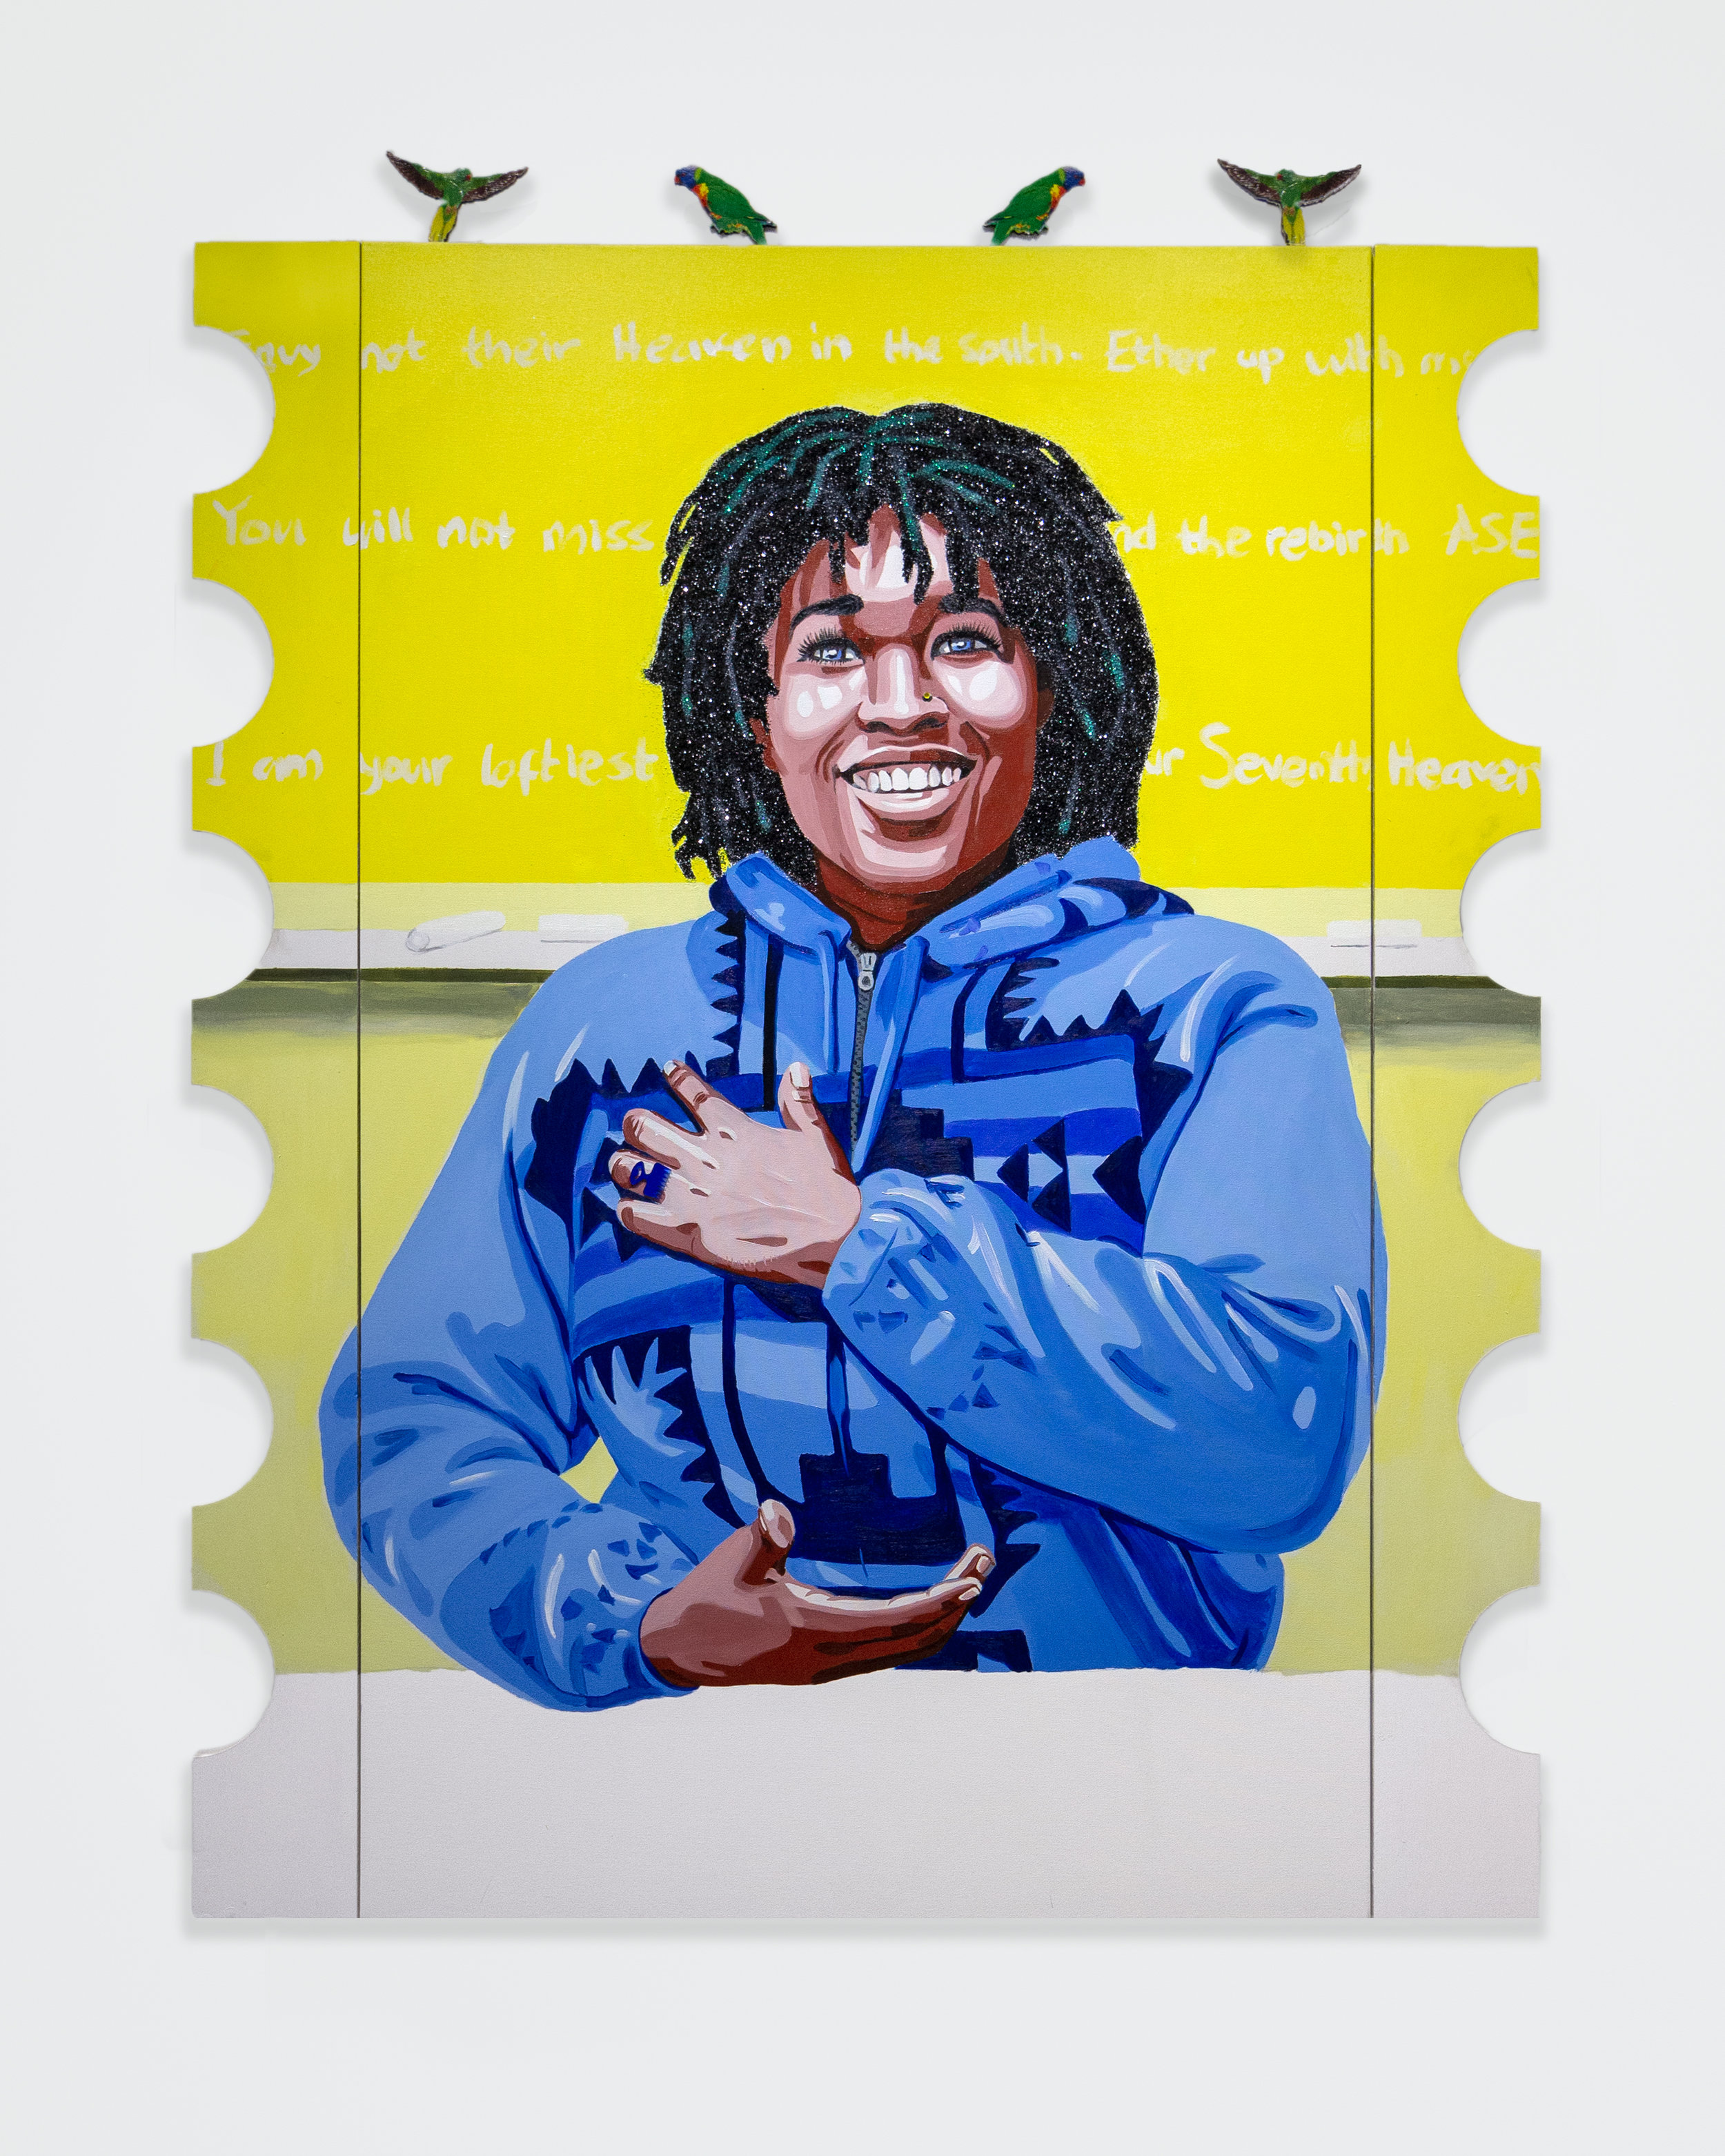 Conrad Egyir  -  Qhristine Moe Paco, Background , 2018 Acrylic, oil, glitter, mounted plexi and wood on canvas 66h x 48w inches